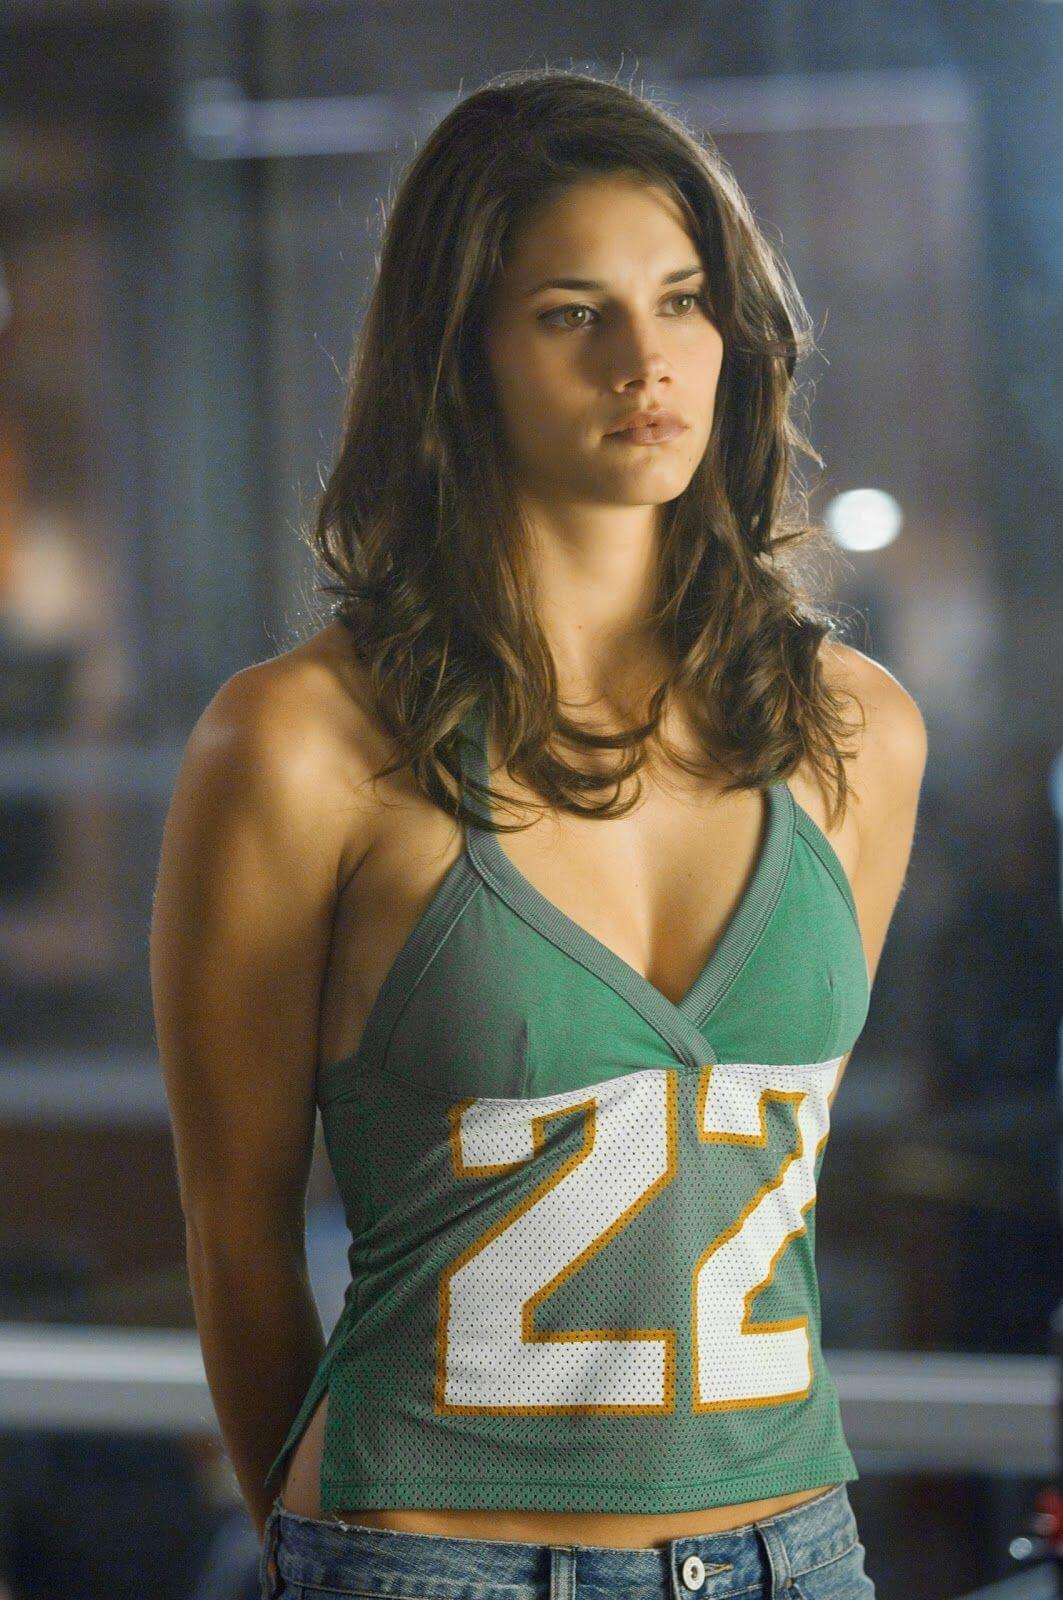 61 Hot Pictures Of Missy Peregrym Which Prove She Is The Sexiest